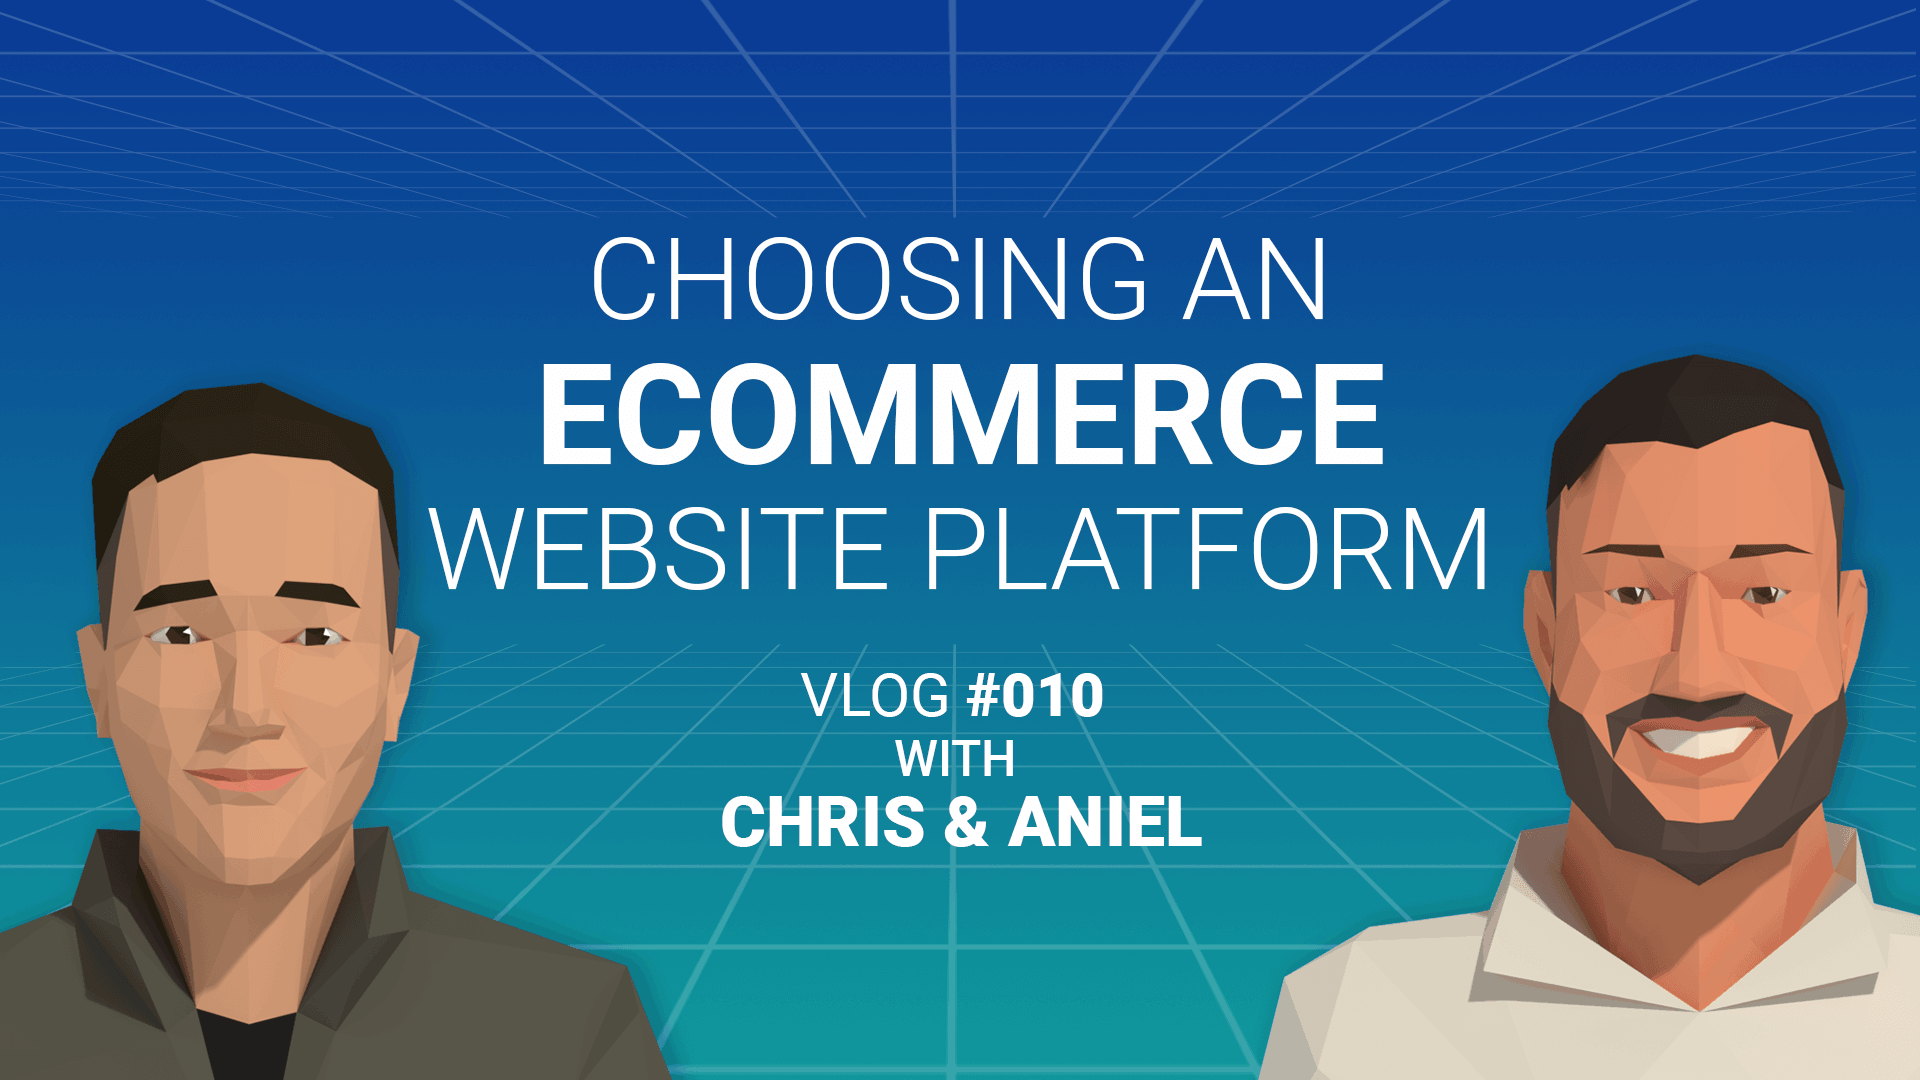 How to Choose an Ecommerce Website Platform